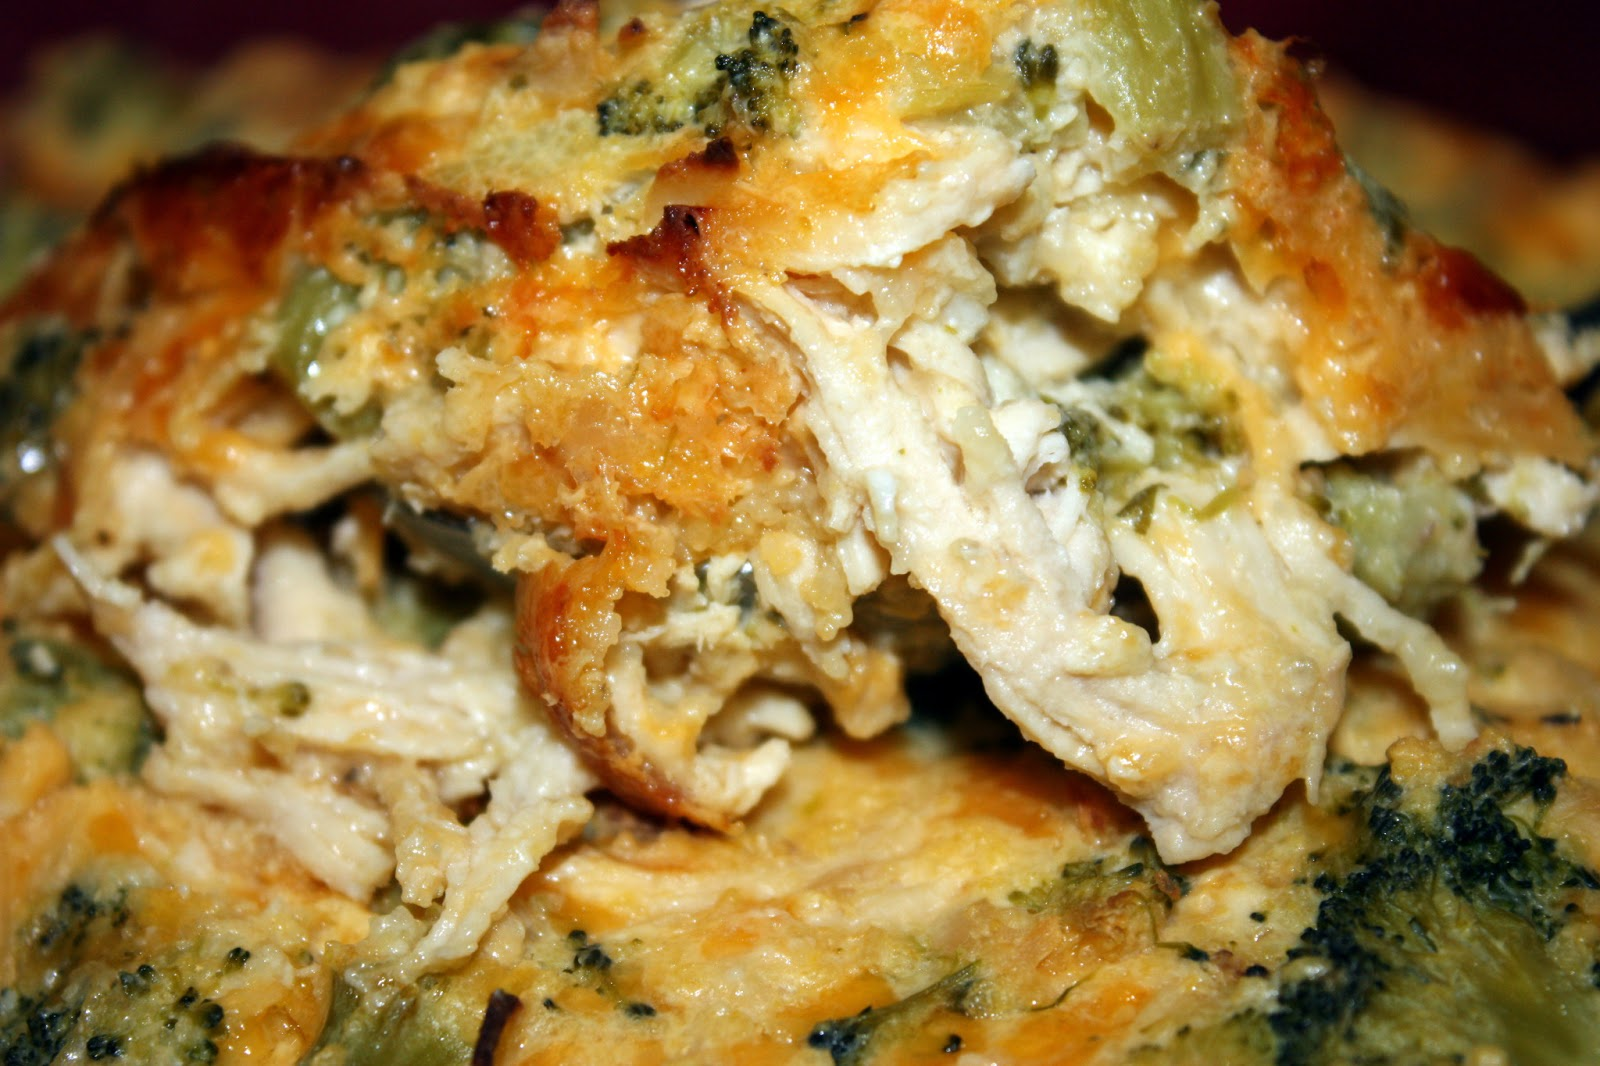 Gracefully Gluten Free: Chicken Broccoli Casserole